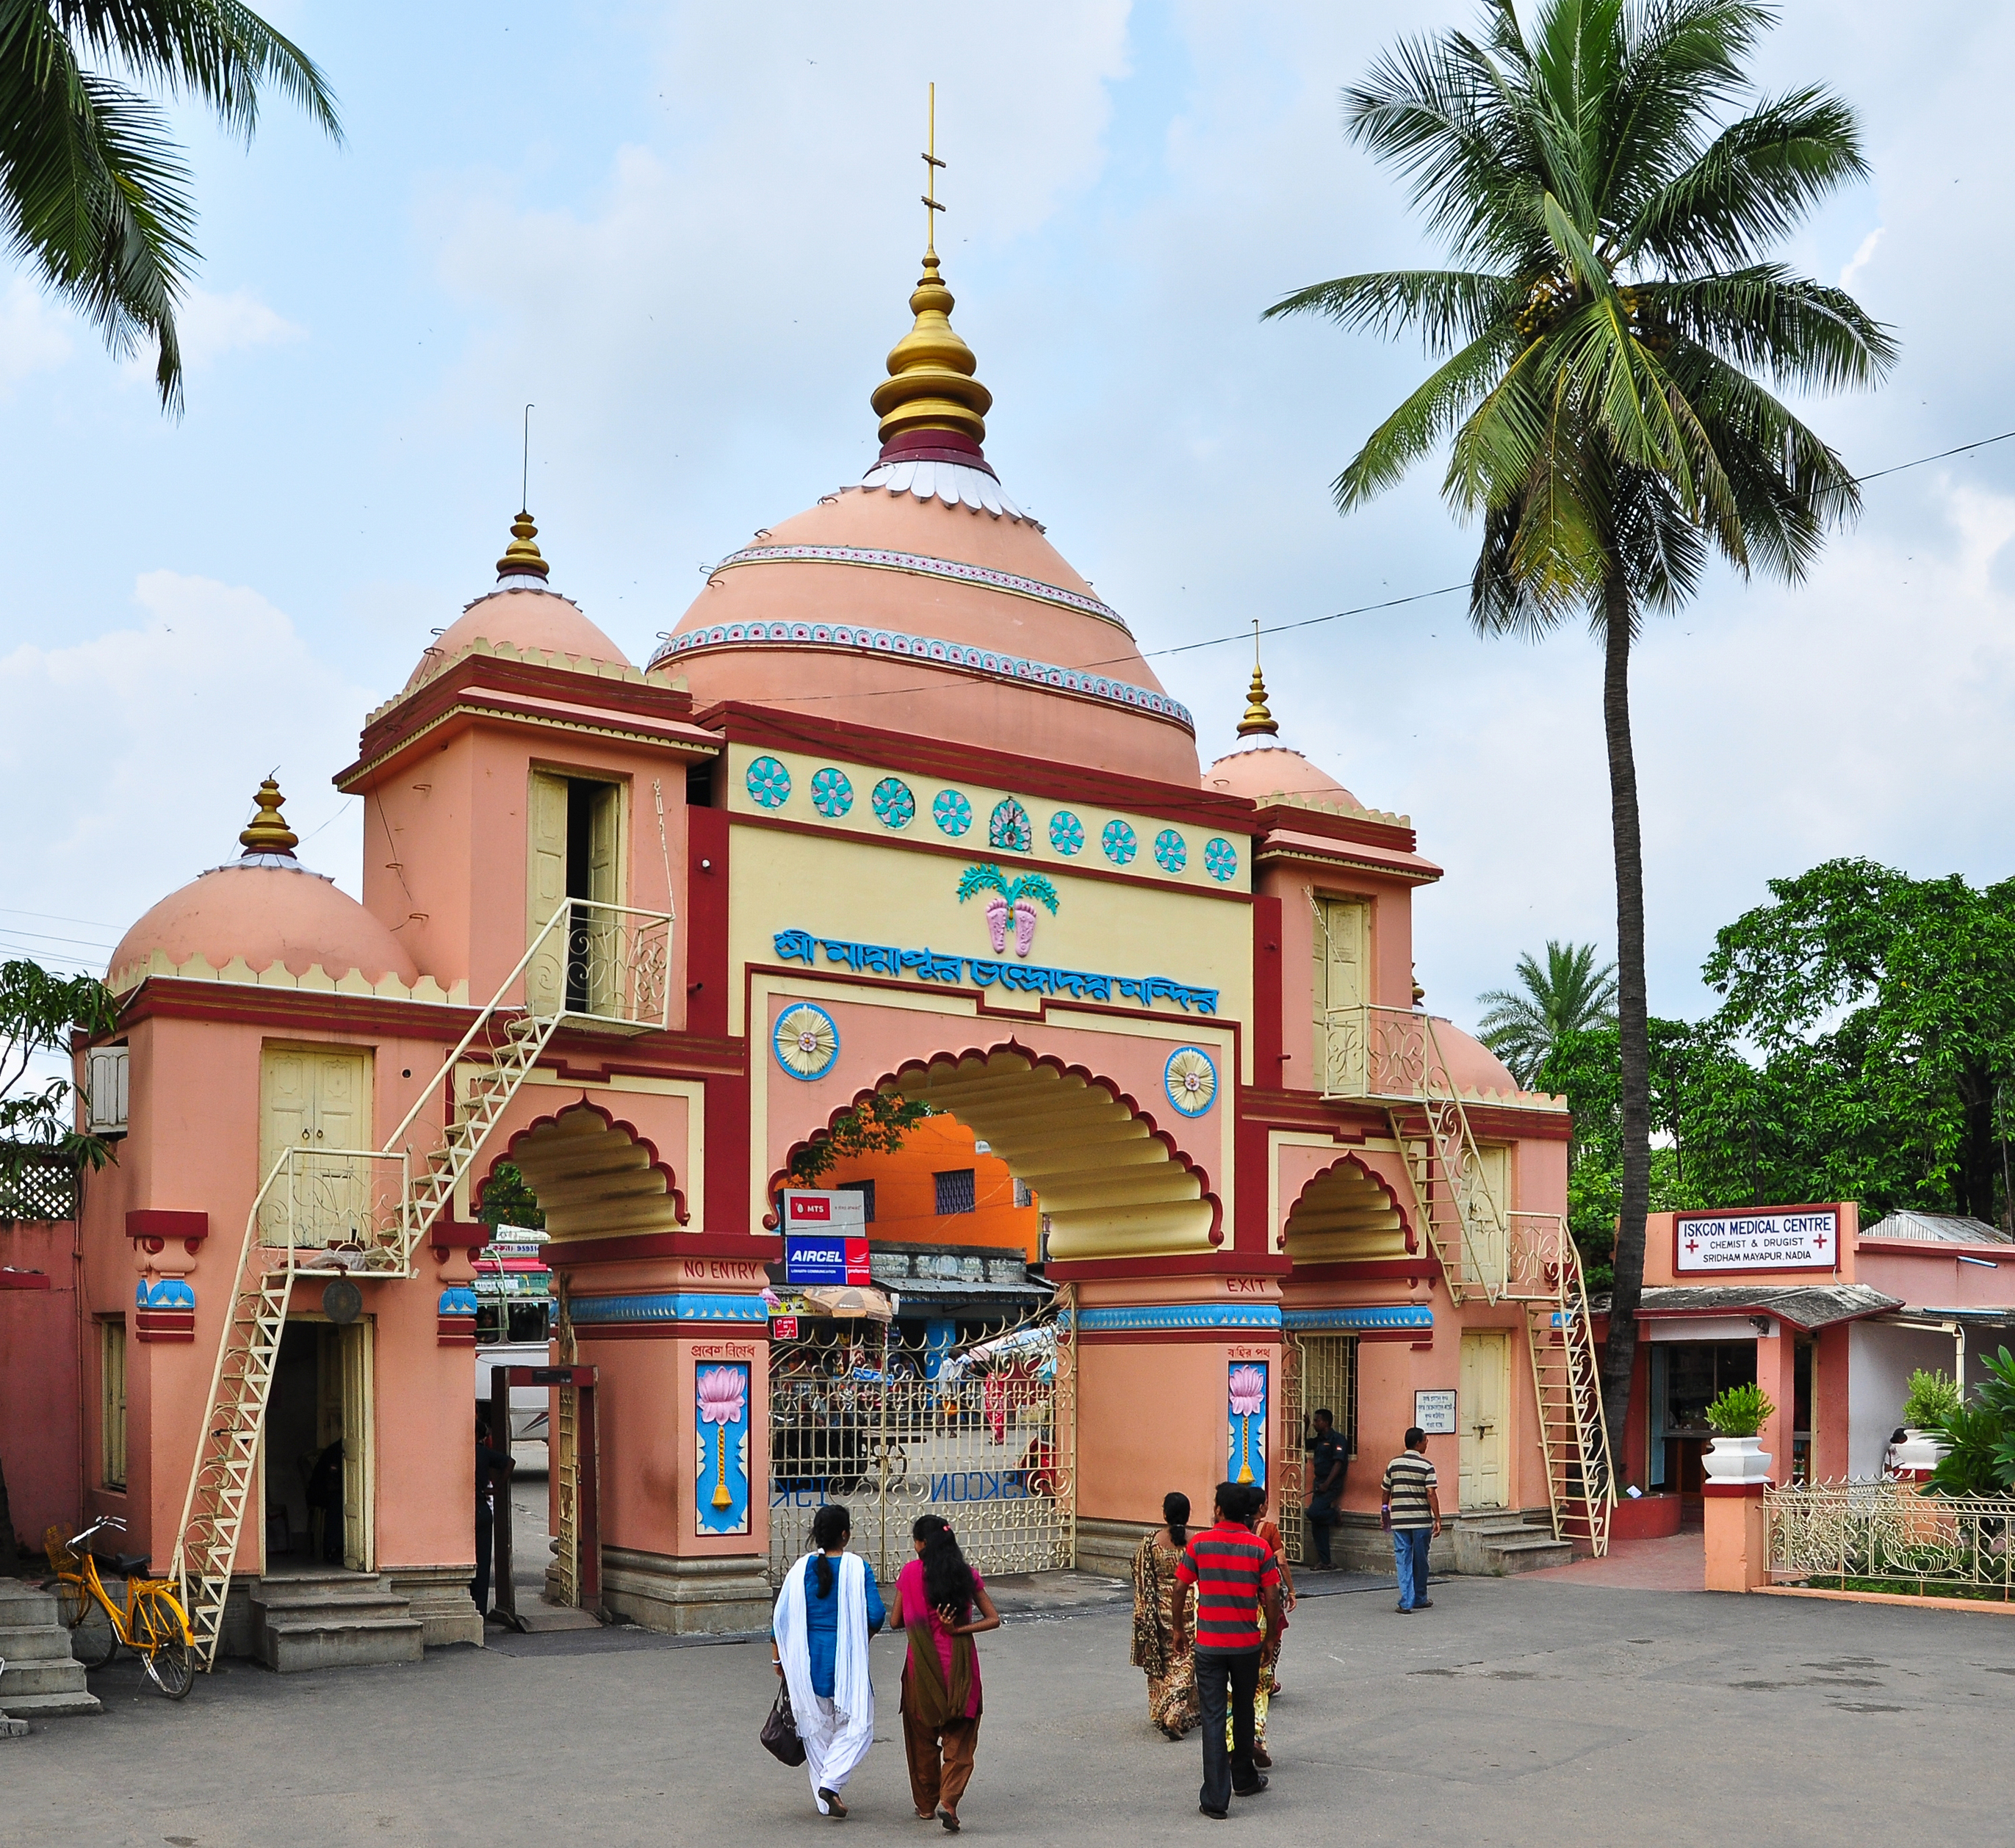 File:Main gate of ISKCON, Mayapur 07102013 jpg - Wikimedia Commons